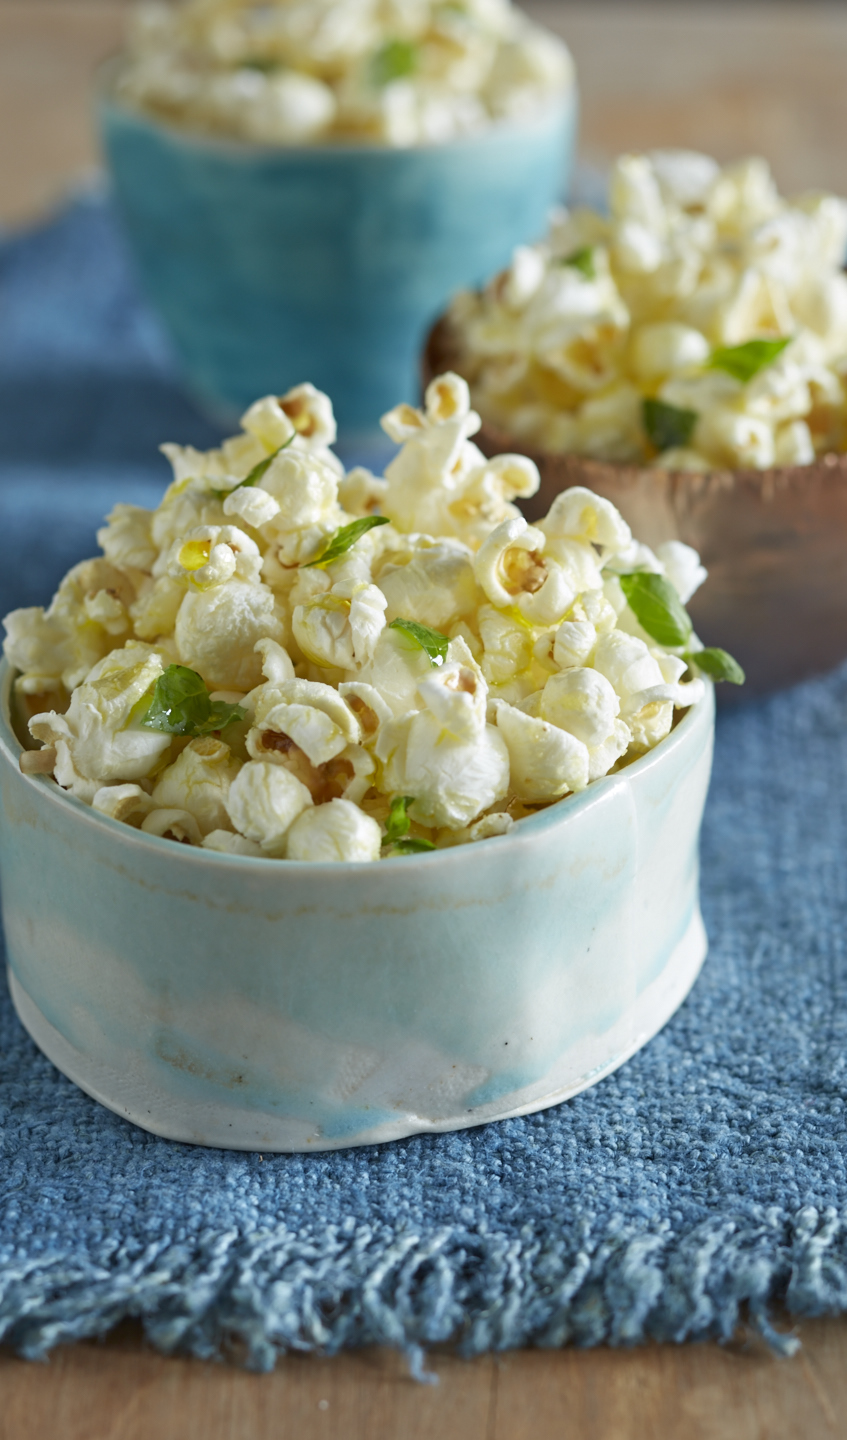 4 Addictive Popcorn Toppings That Are Way Better Than Butter